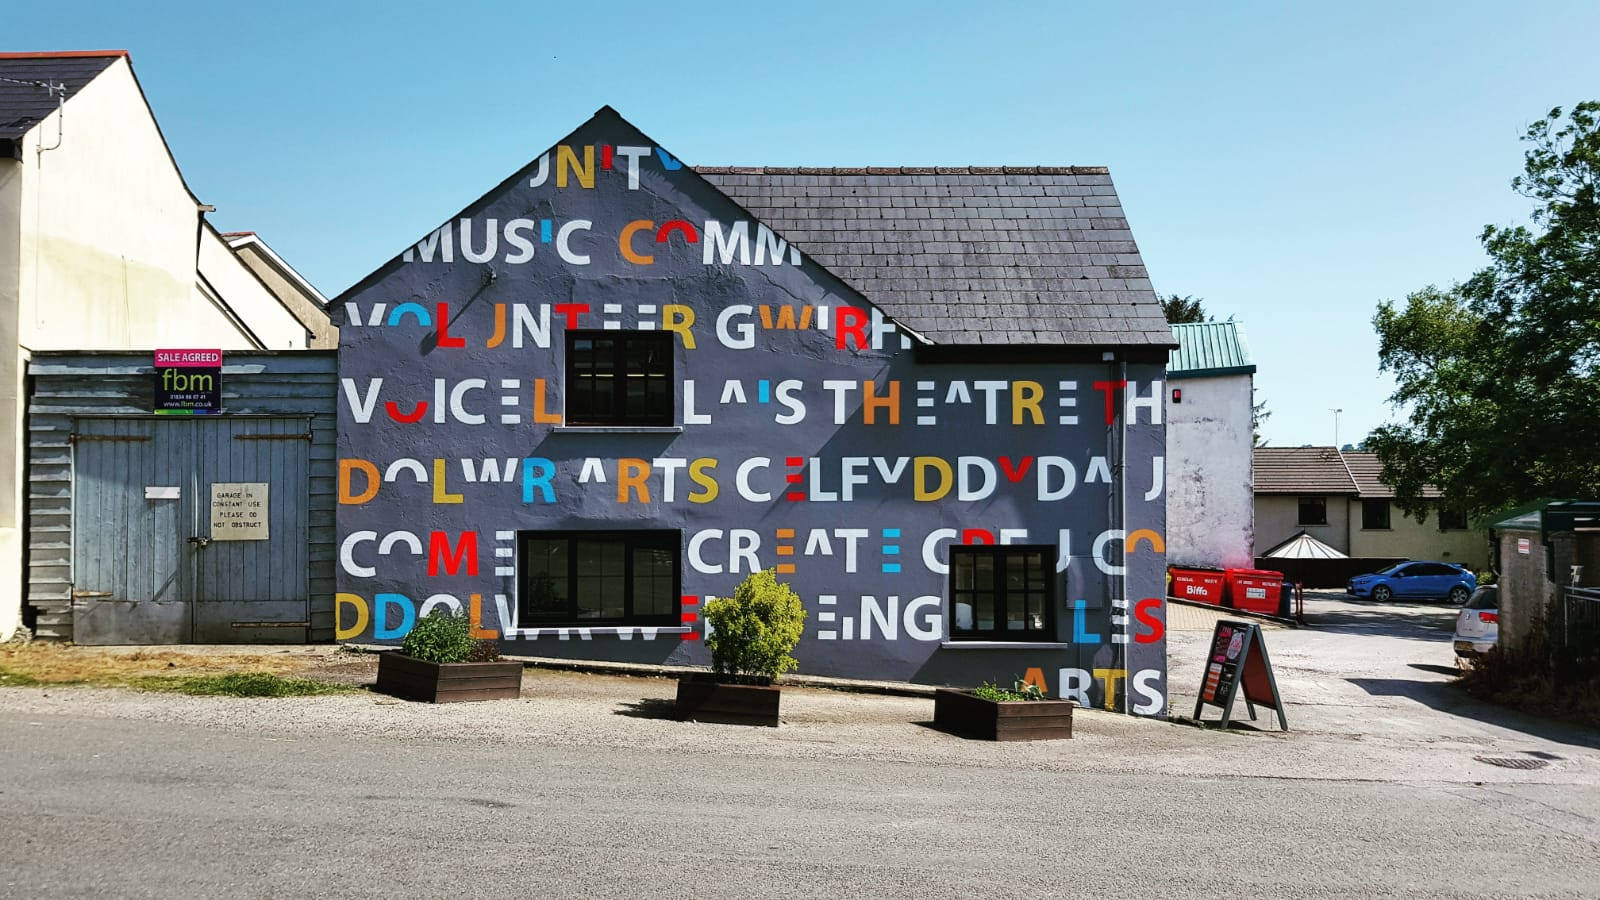 The London mural Company x Narberth 3